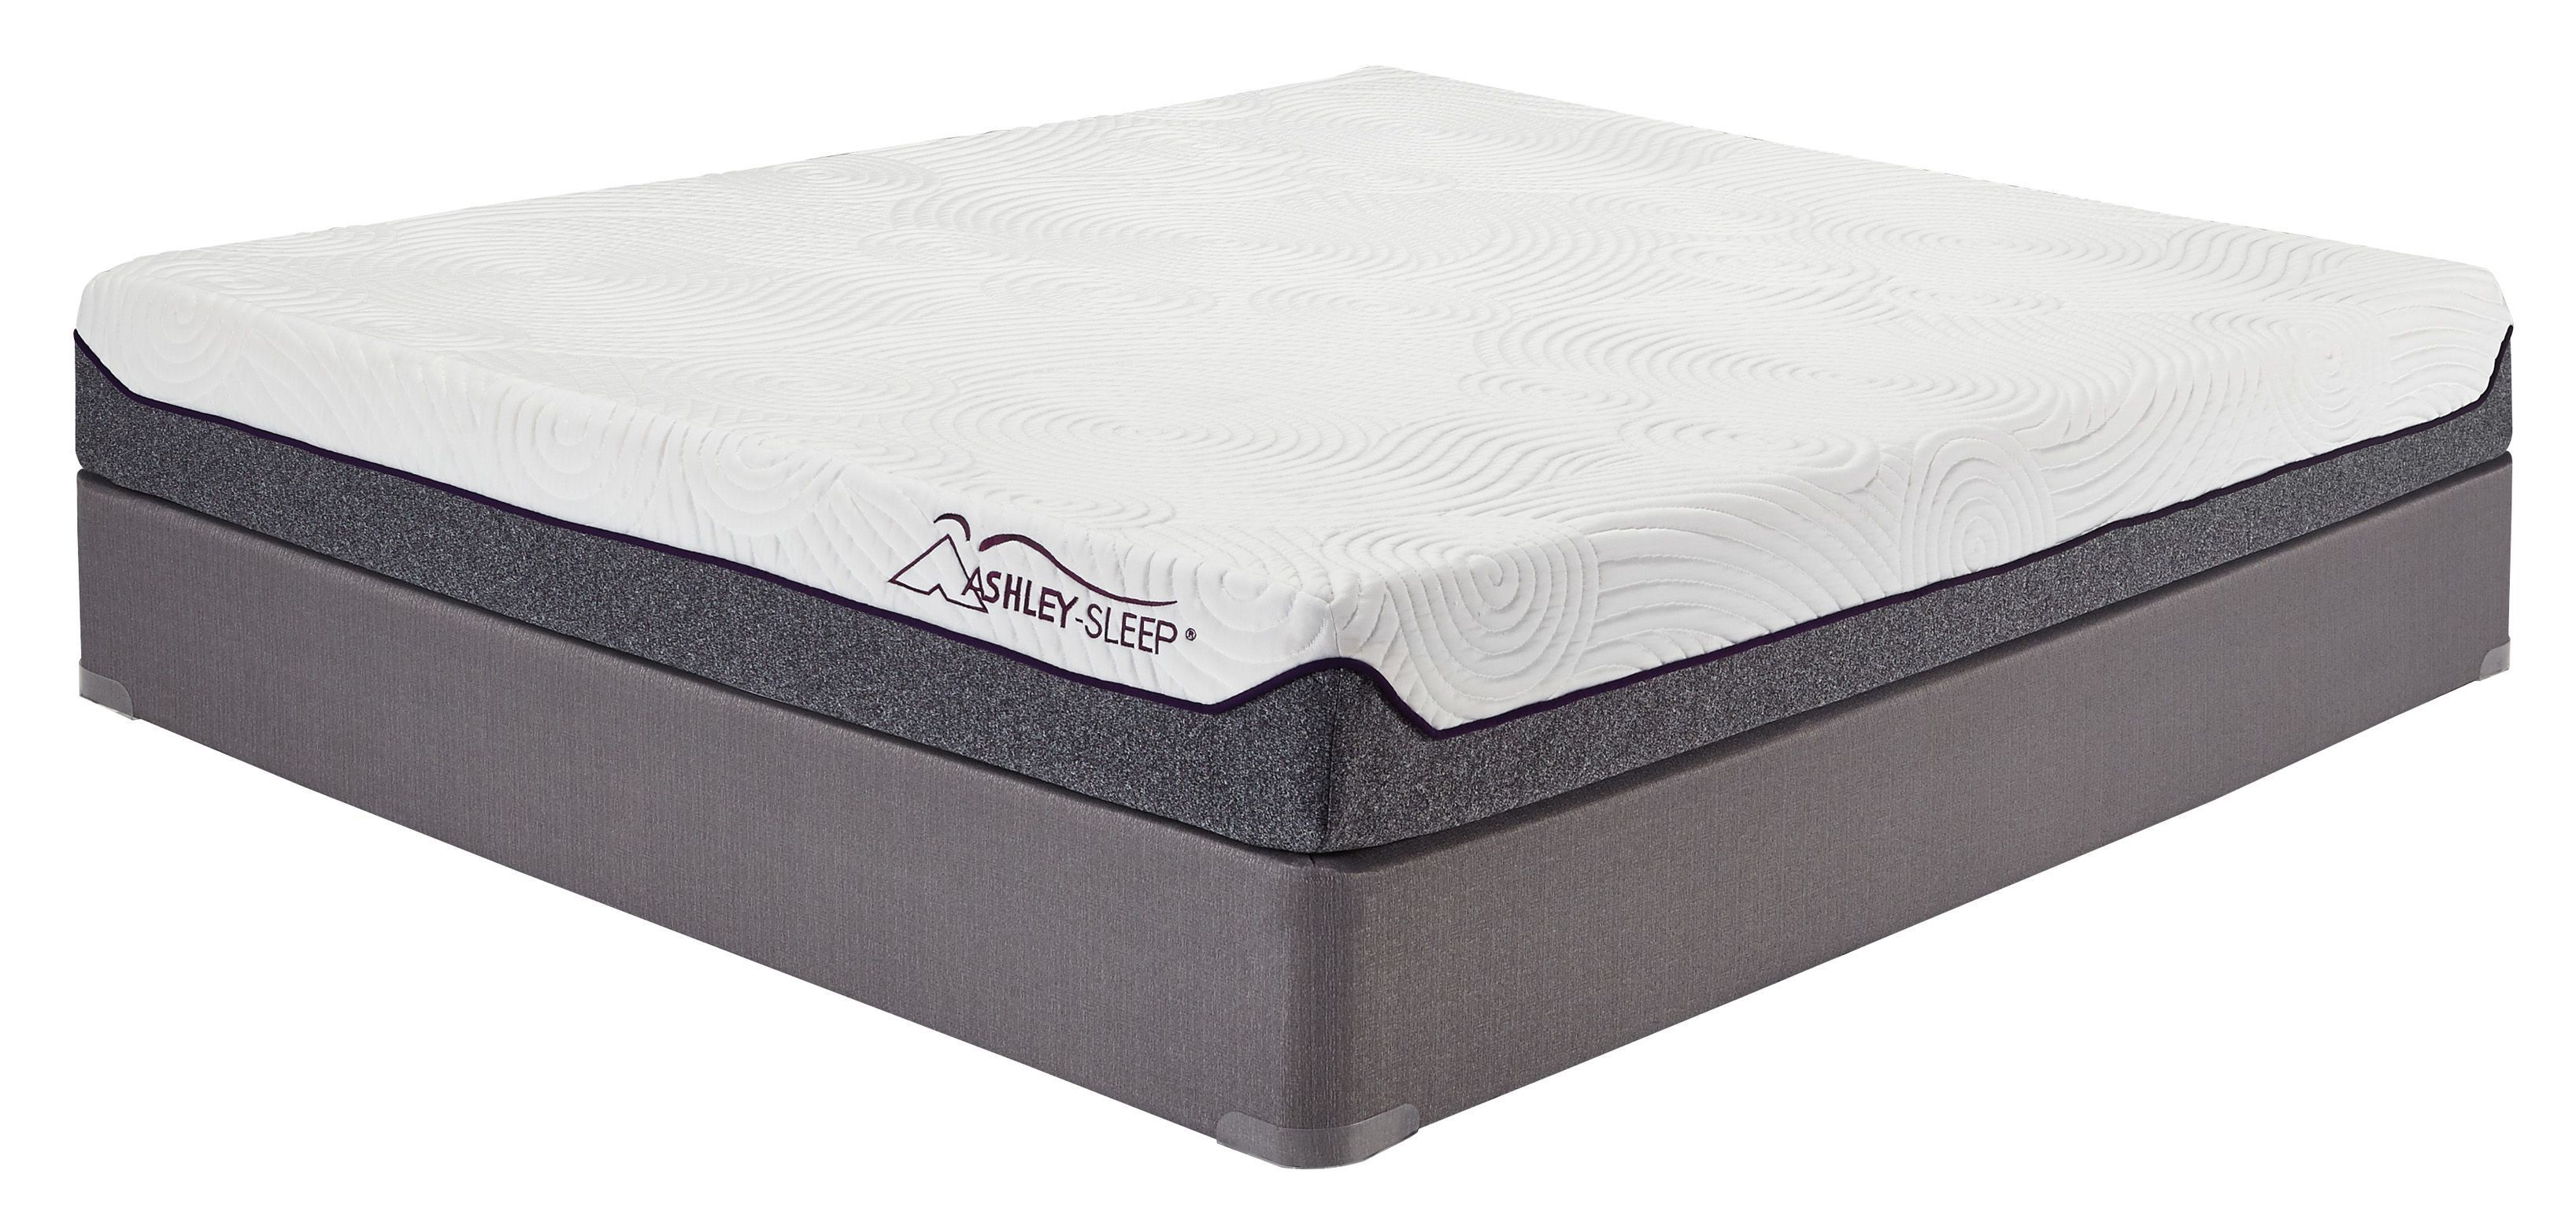 8 inch memory foam white twin mattress m94411 ashley Double mattress memory foam